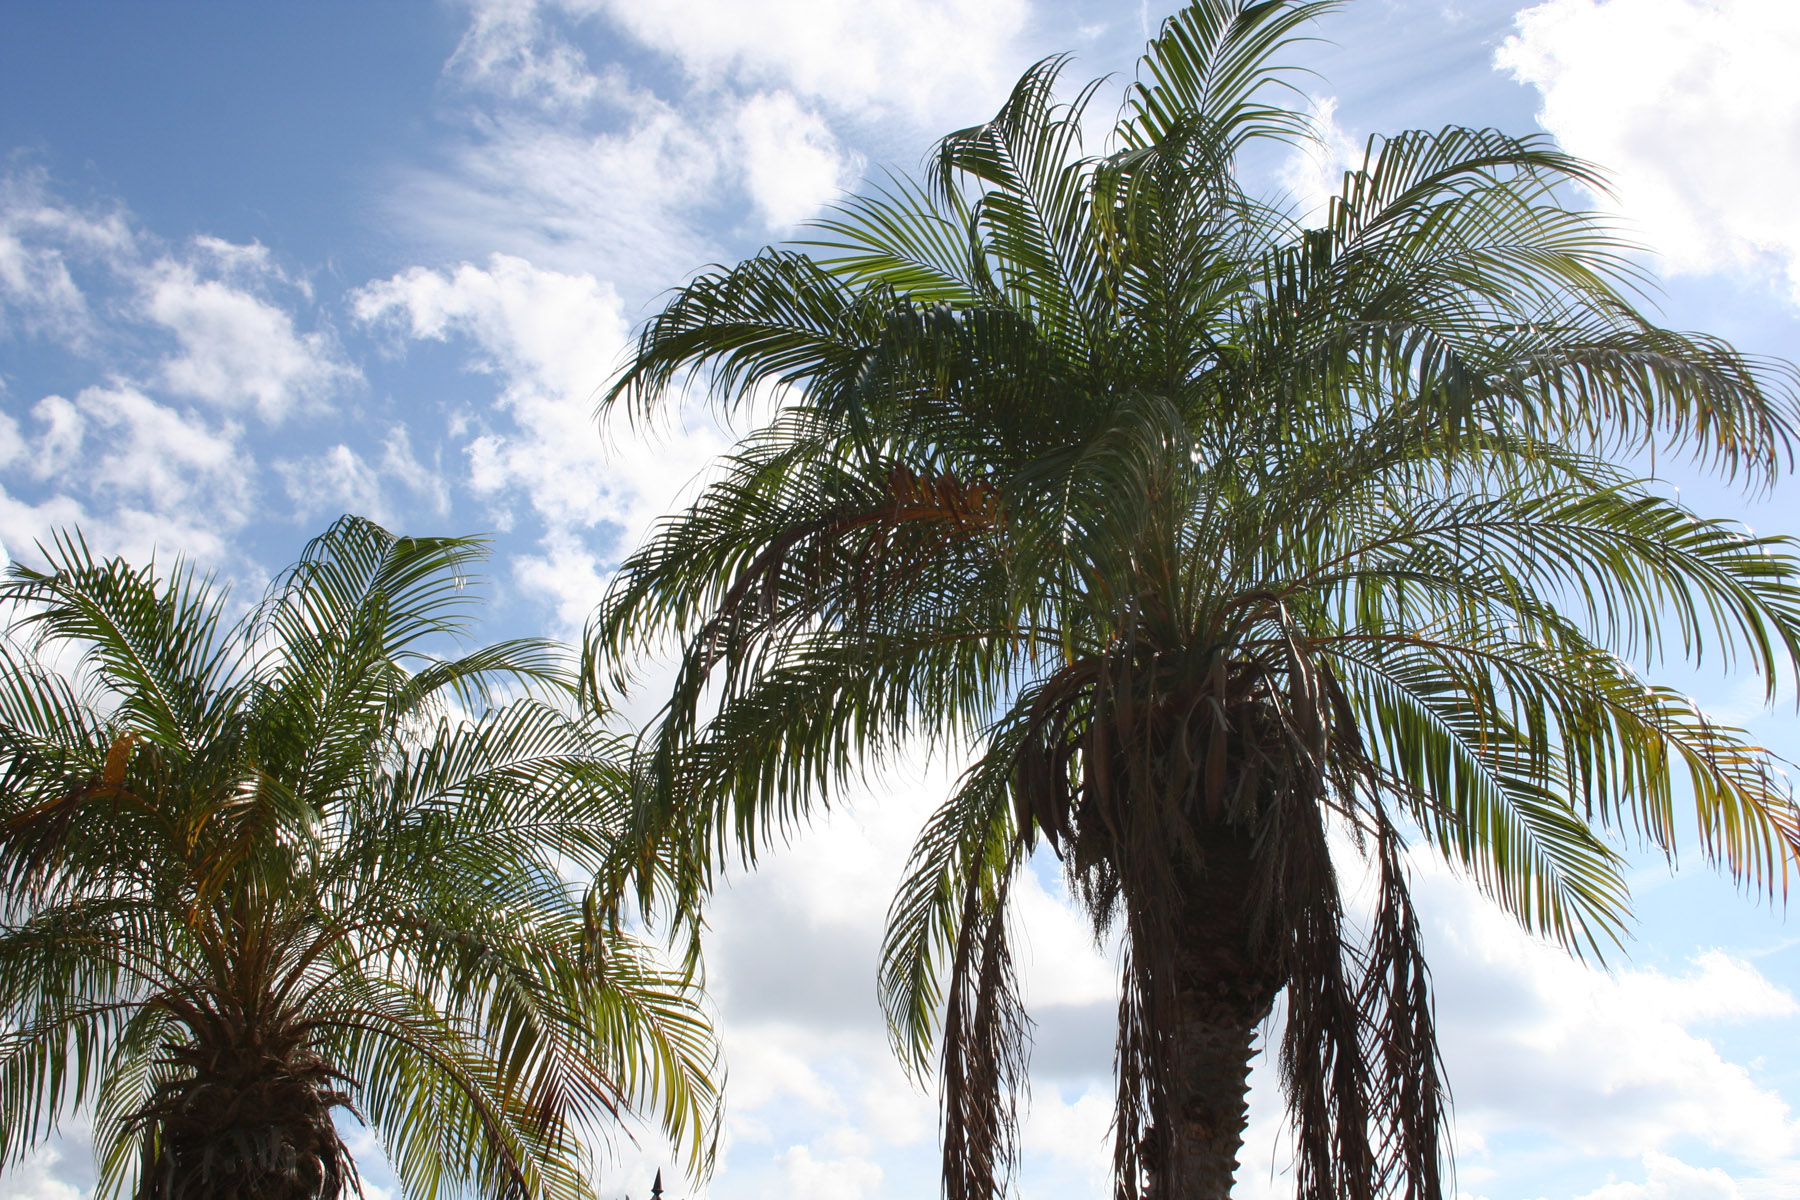 Holly Hill palm trees